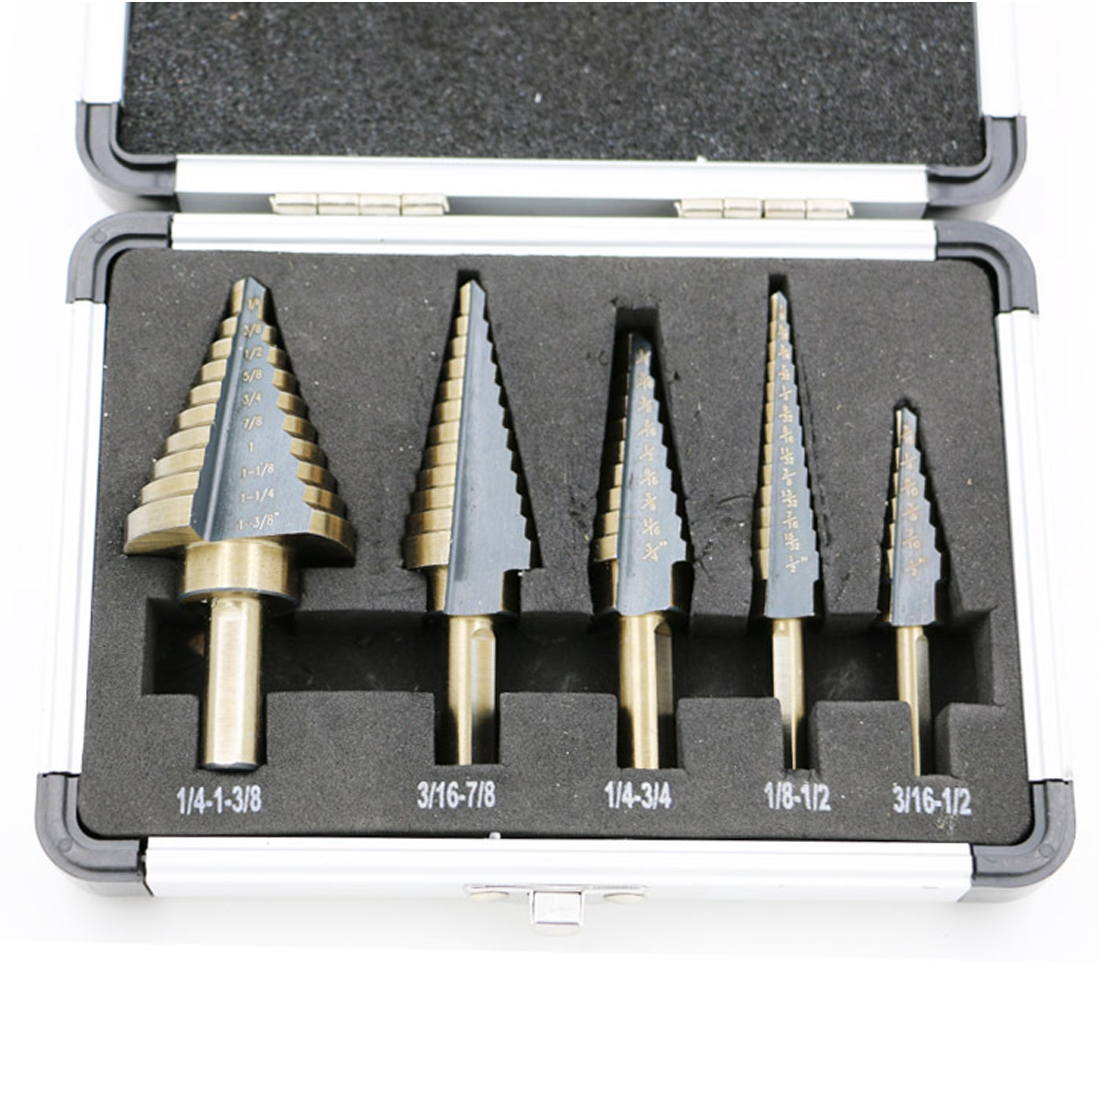 5pcs Step Drill Bit Set Hss Cobalt Multiple Hole 50 Sizes Step Drills 1/4-1-3/8 3/16-7/8 1/4-3/4 1/8-1/2 3/16-1/2 Drill Bits 5pcs step drill bit set hss cobalt multiple hole 50 sizes sae step drills 1 4 1 3 8 3 16 7 8 1 4 3 4 1 8 1 2 3 16 1 2 drill bits